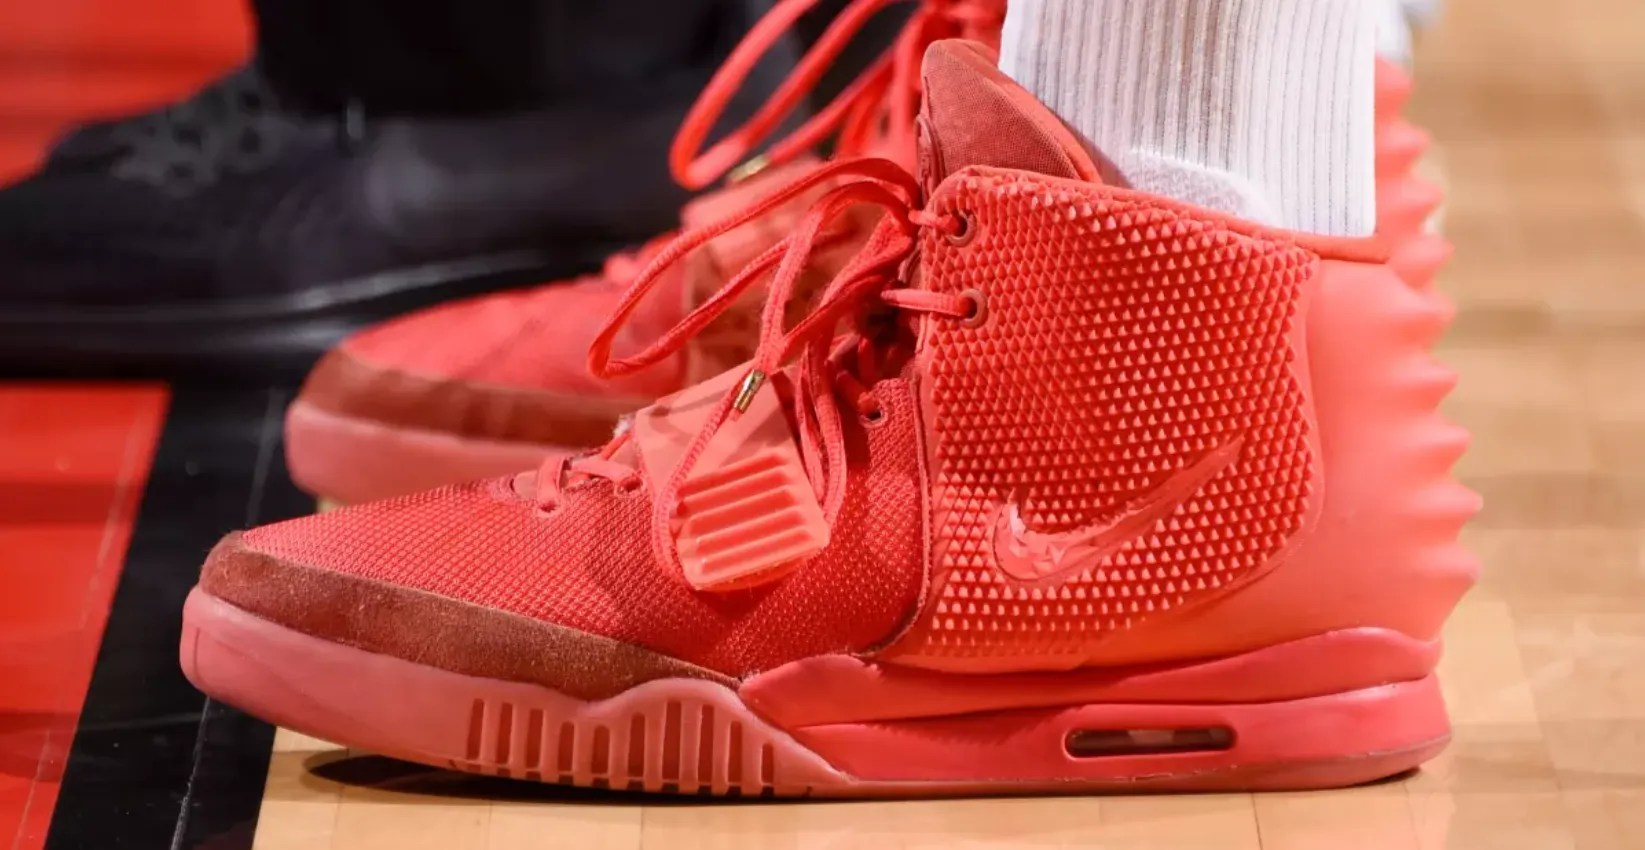 636a76877b8e This wouldn t be an article about sneakers without the addition of the  legendary Red Octobers. These are anything but affordable